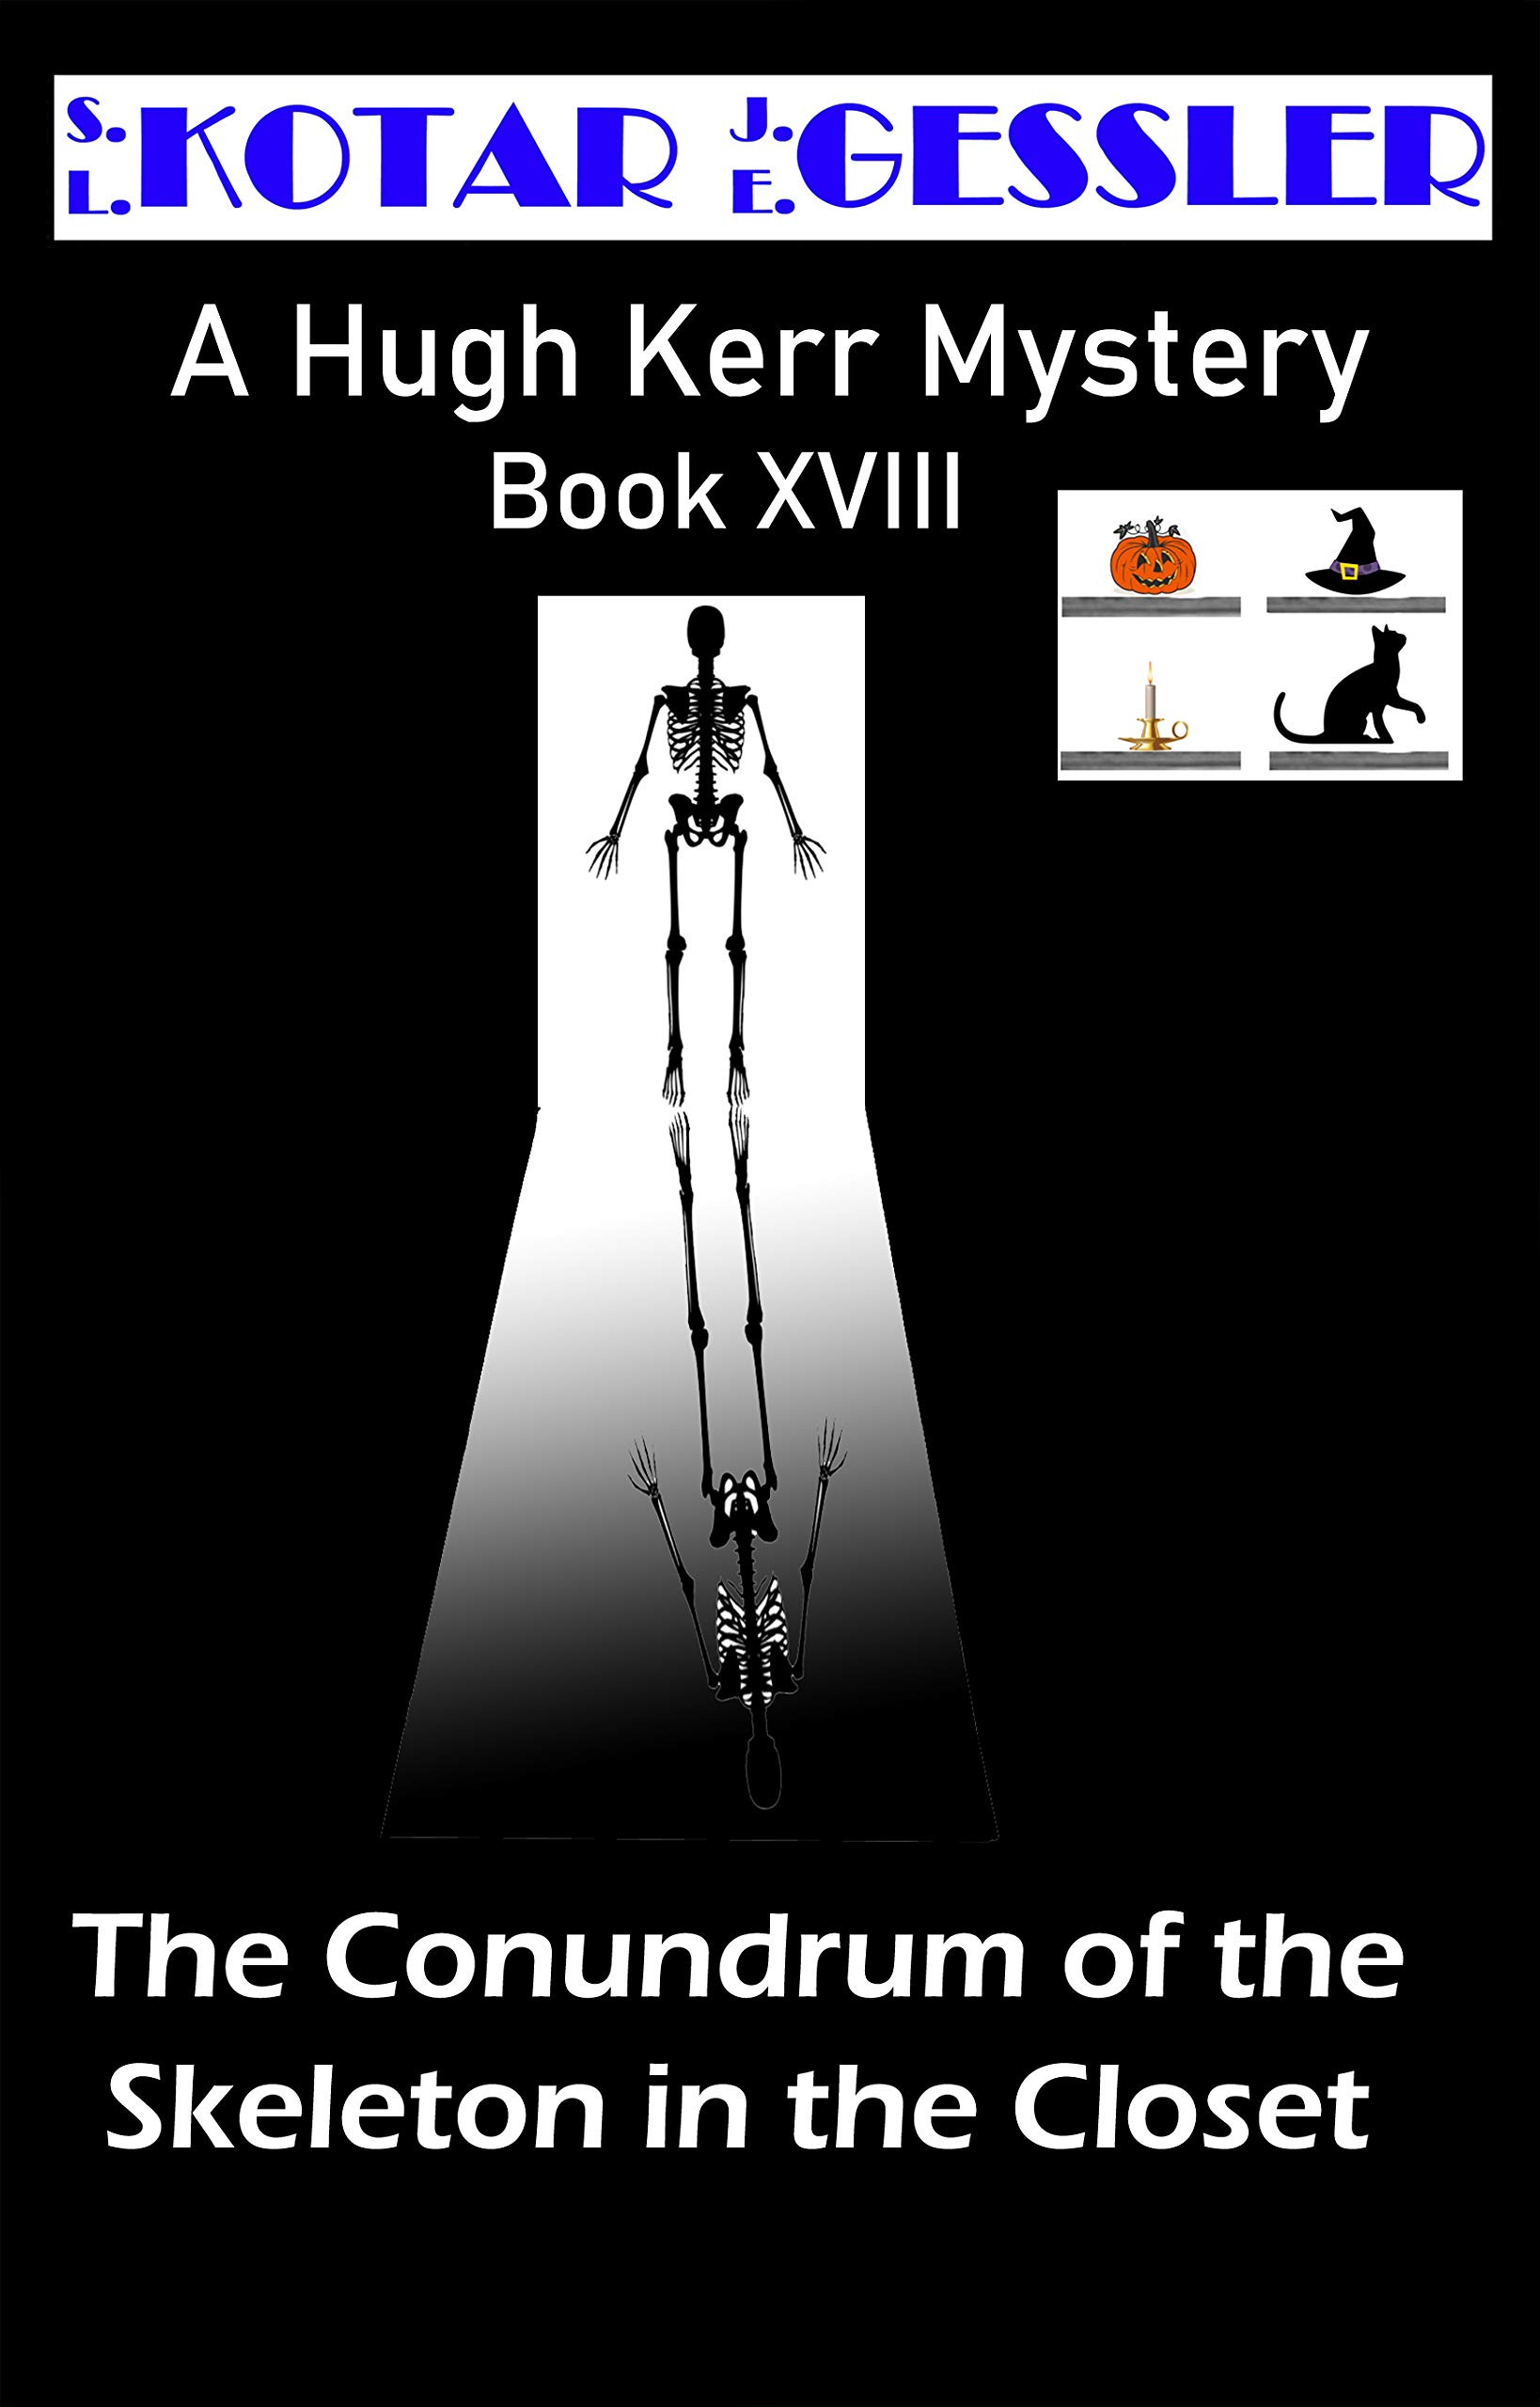 The Conundrum of the Skeleton in the Closet - The Hugh Kerr Mystery Series Book XVIII